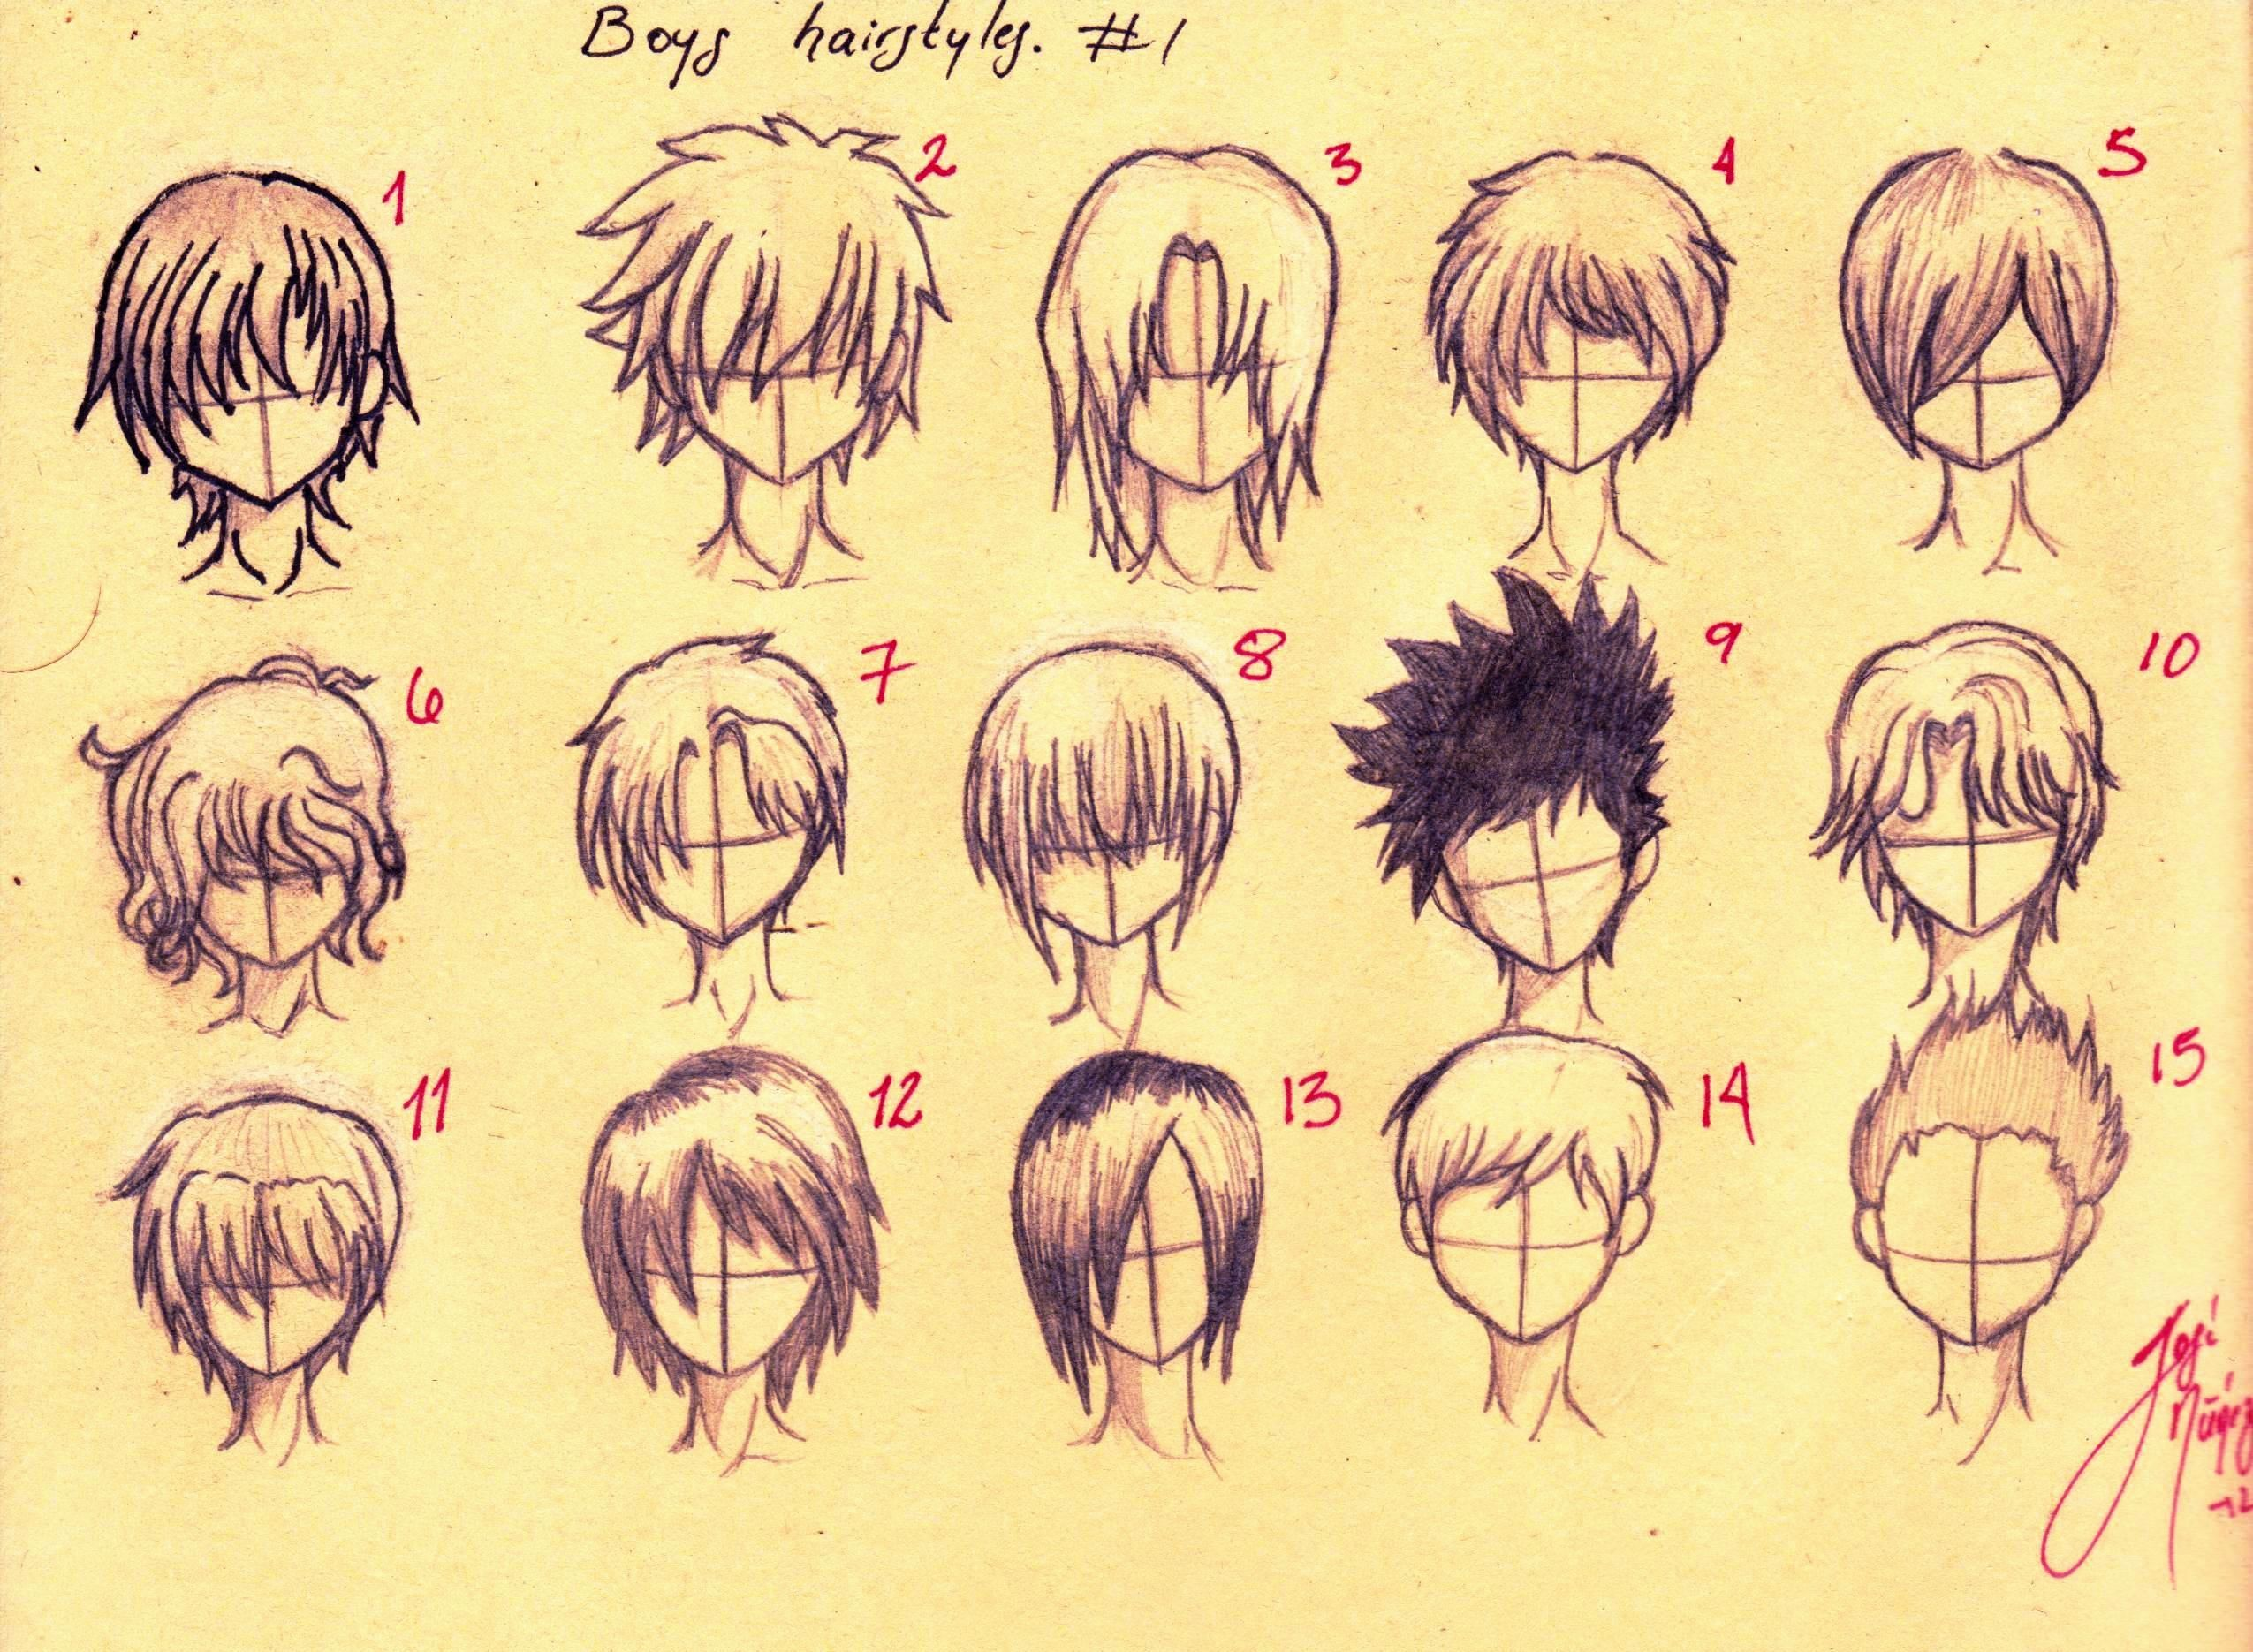 Anime Hairstyles For Boys Tutorial By Josen16 On Deviantart Description From Pinterest Com I Searched For This On Bing Anime Boy Hair Anime Hair Manga Hair